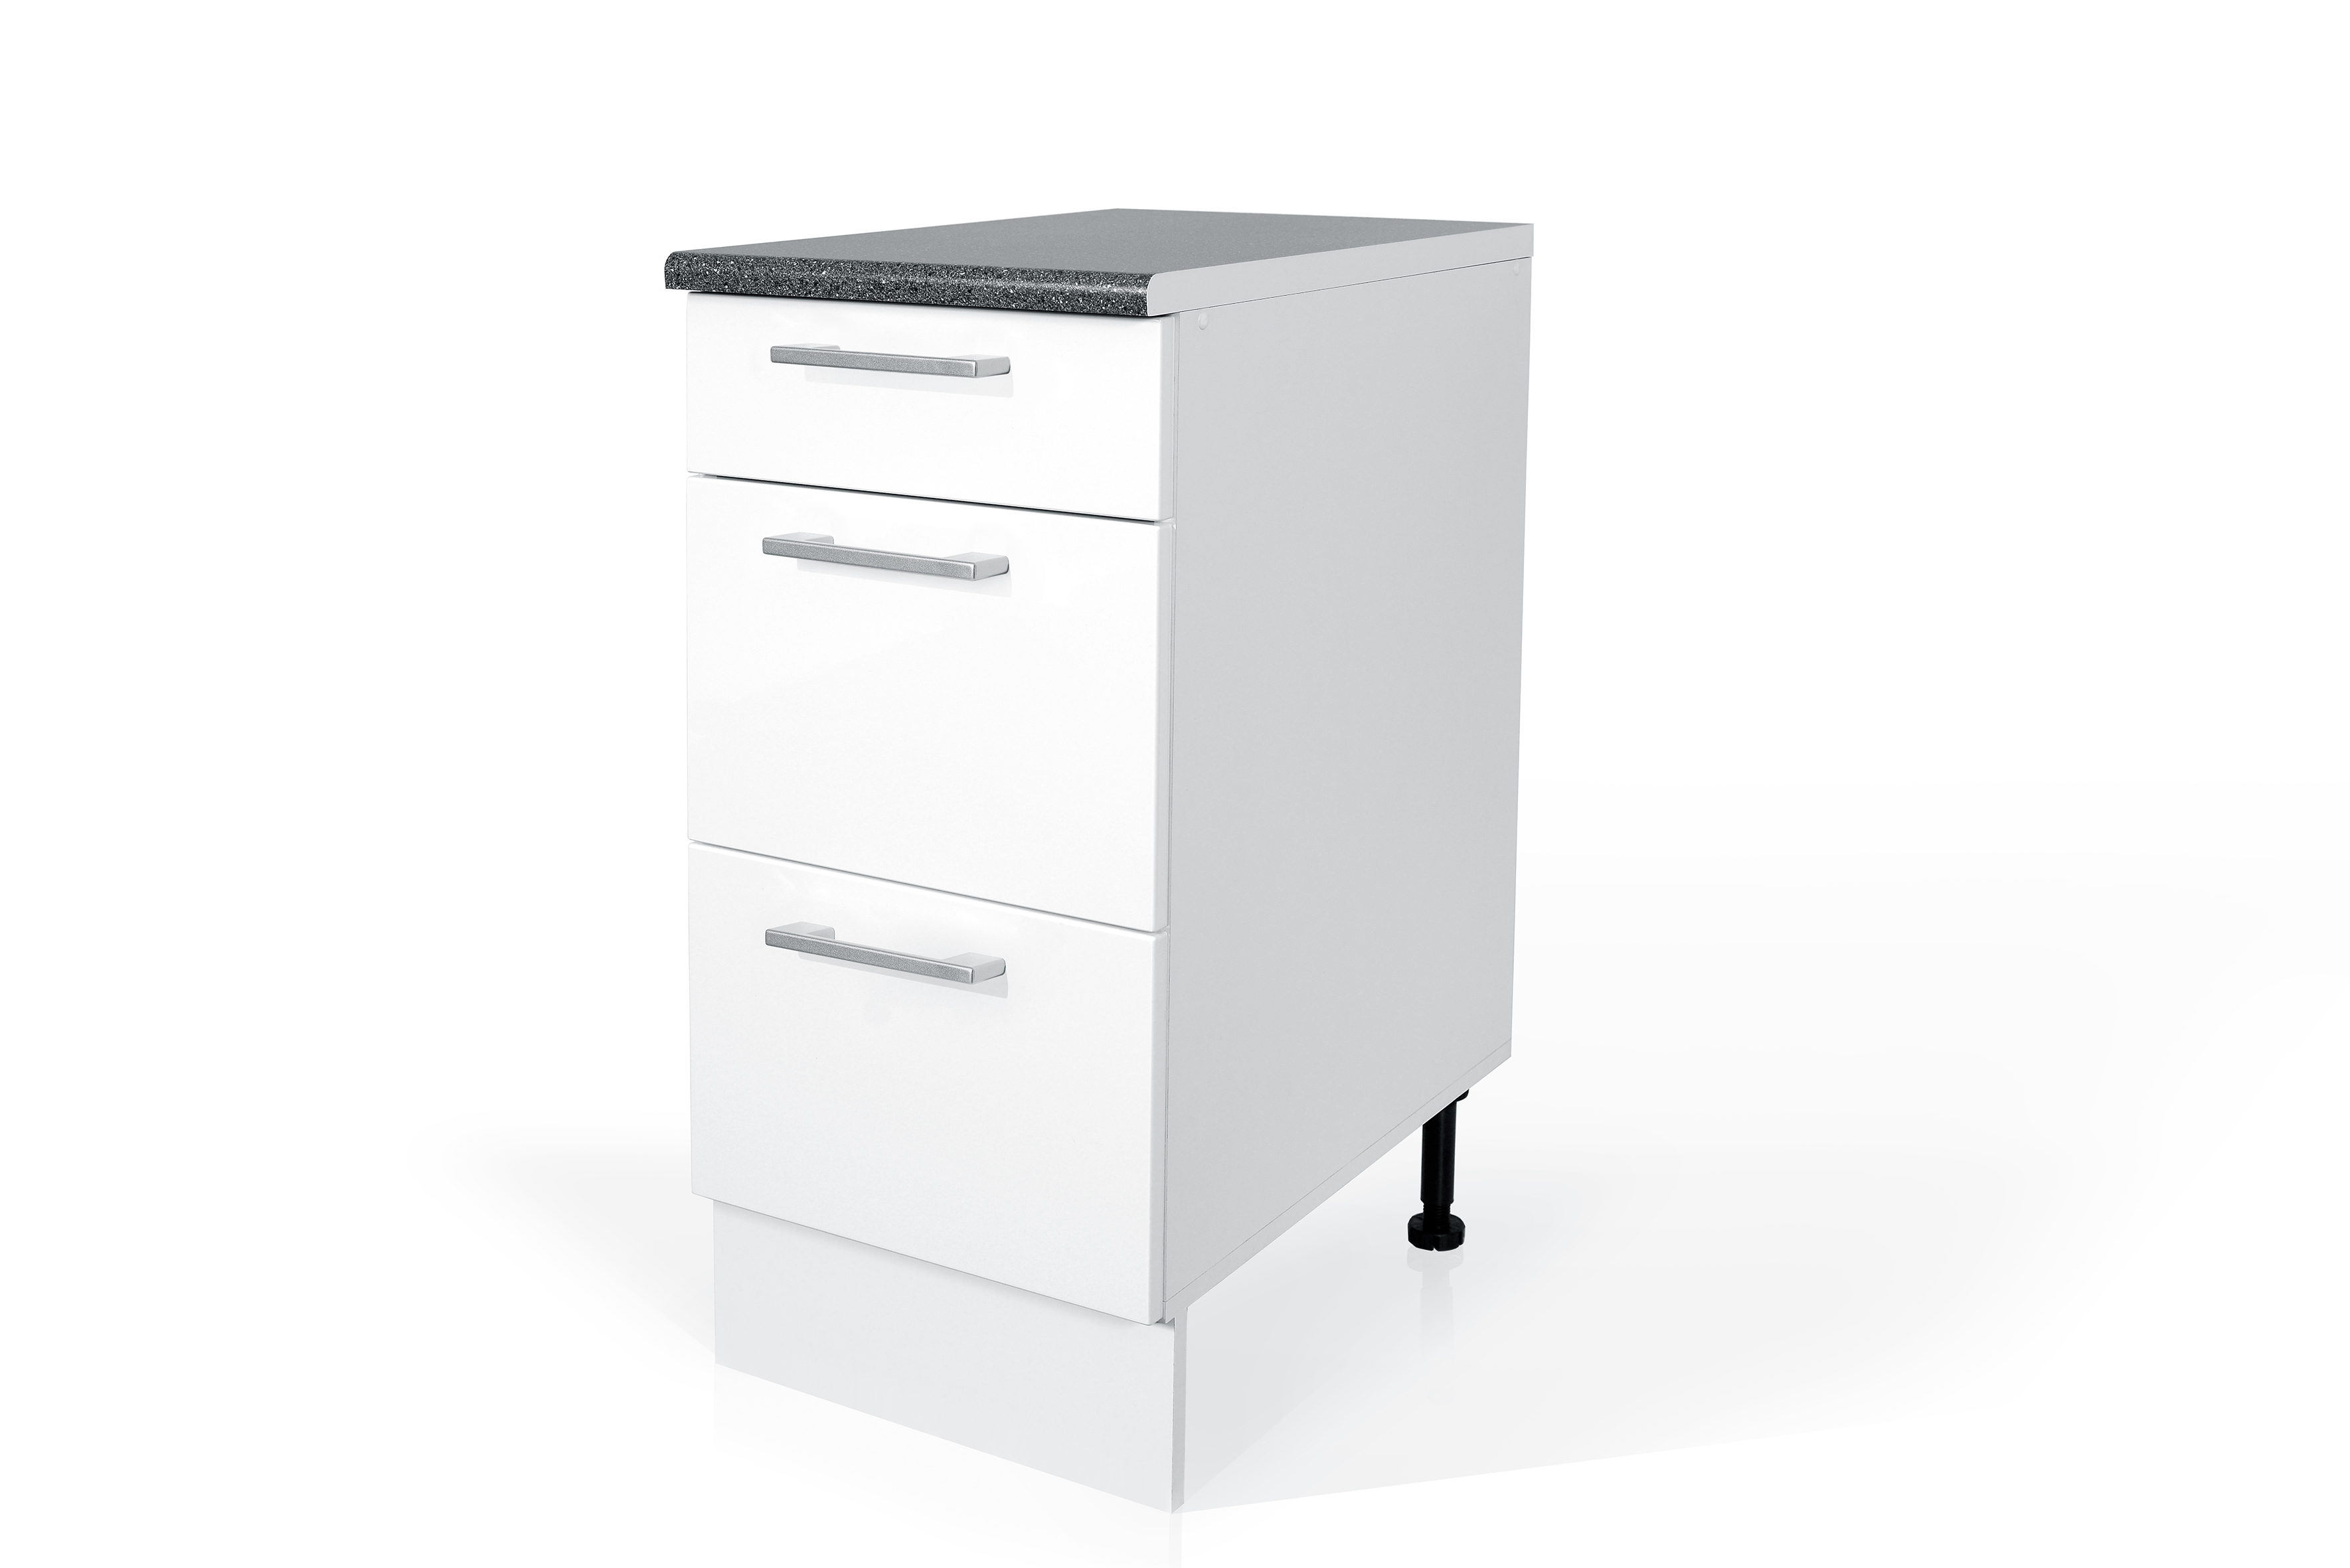 PVC Satin White Base drawer cabinet S40SZ3 for kitchen